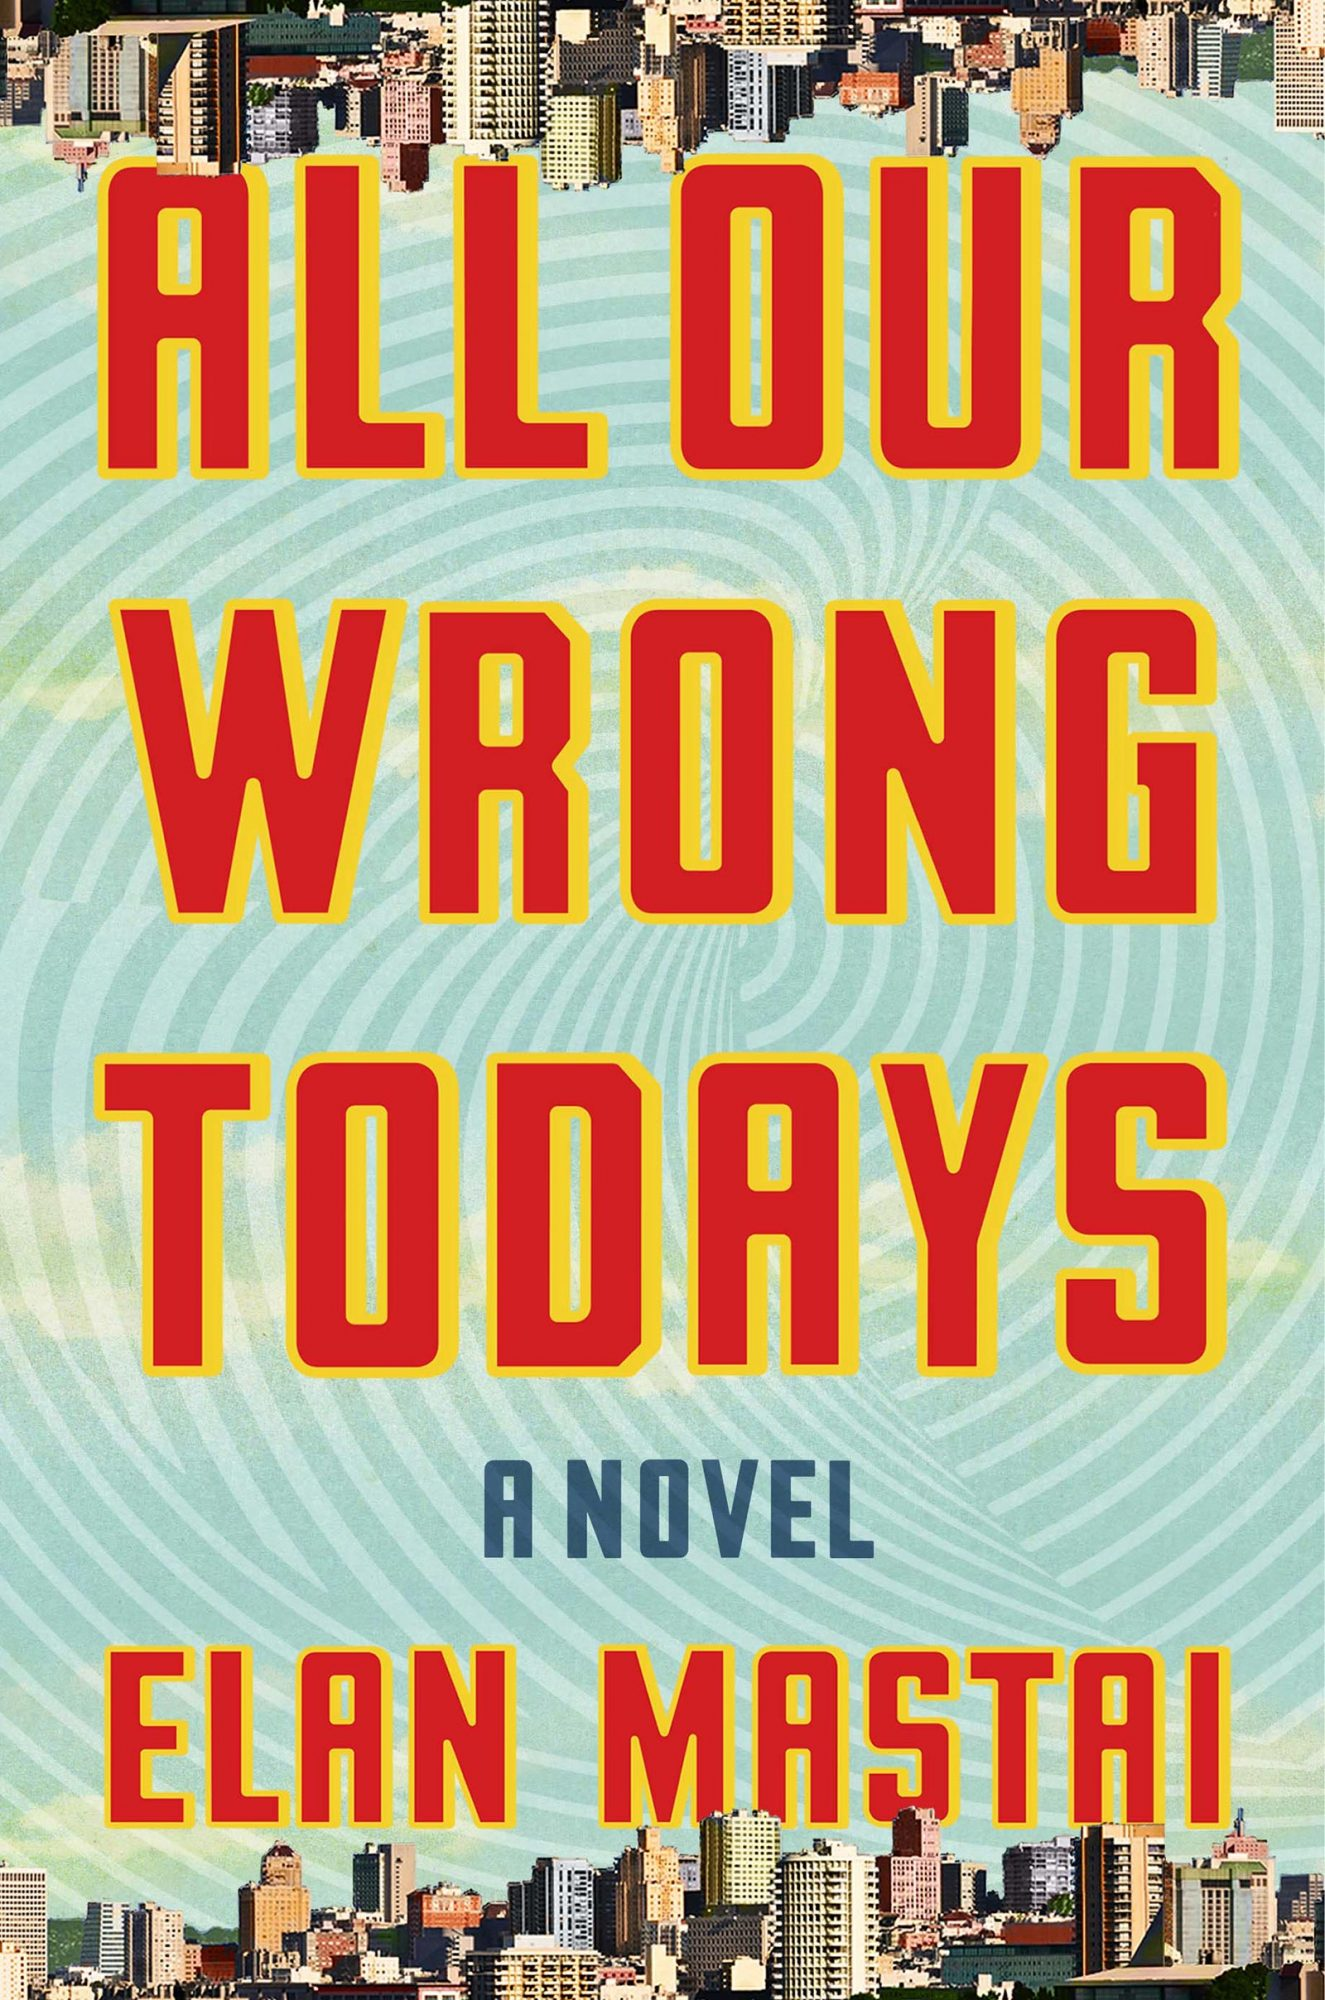 All Our Wrong Todays: A Novel (2/7/2017)by Elan Mastai